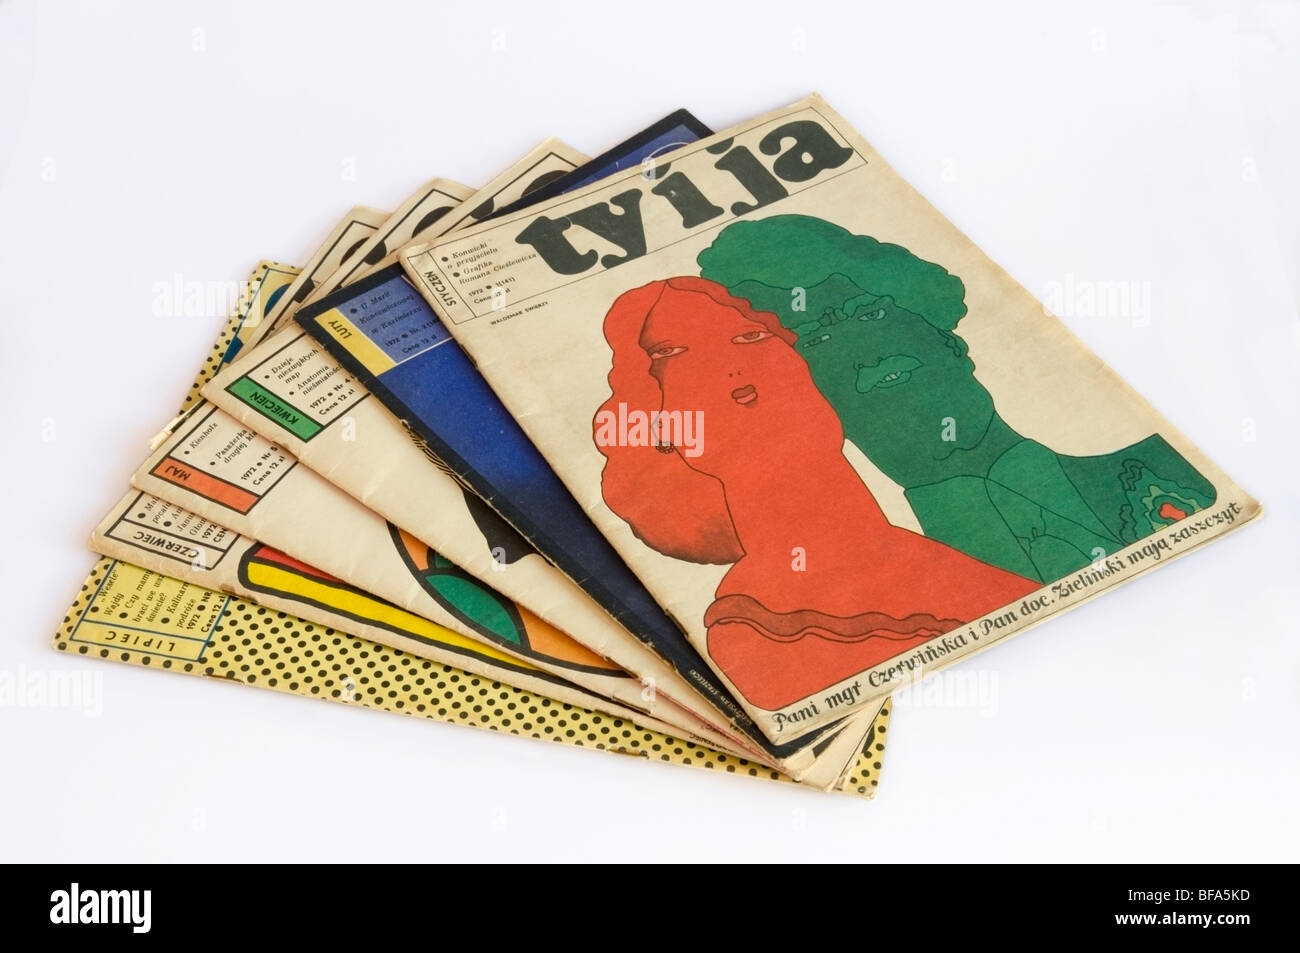 Six editions of Ty i Ja, 'You and Me' Illustrated Polish Magazine collection from 1972, front cover by W. Świerzy - Stock Image